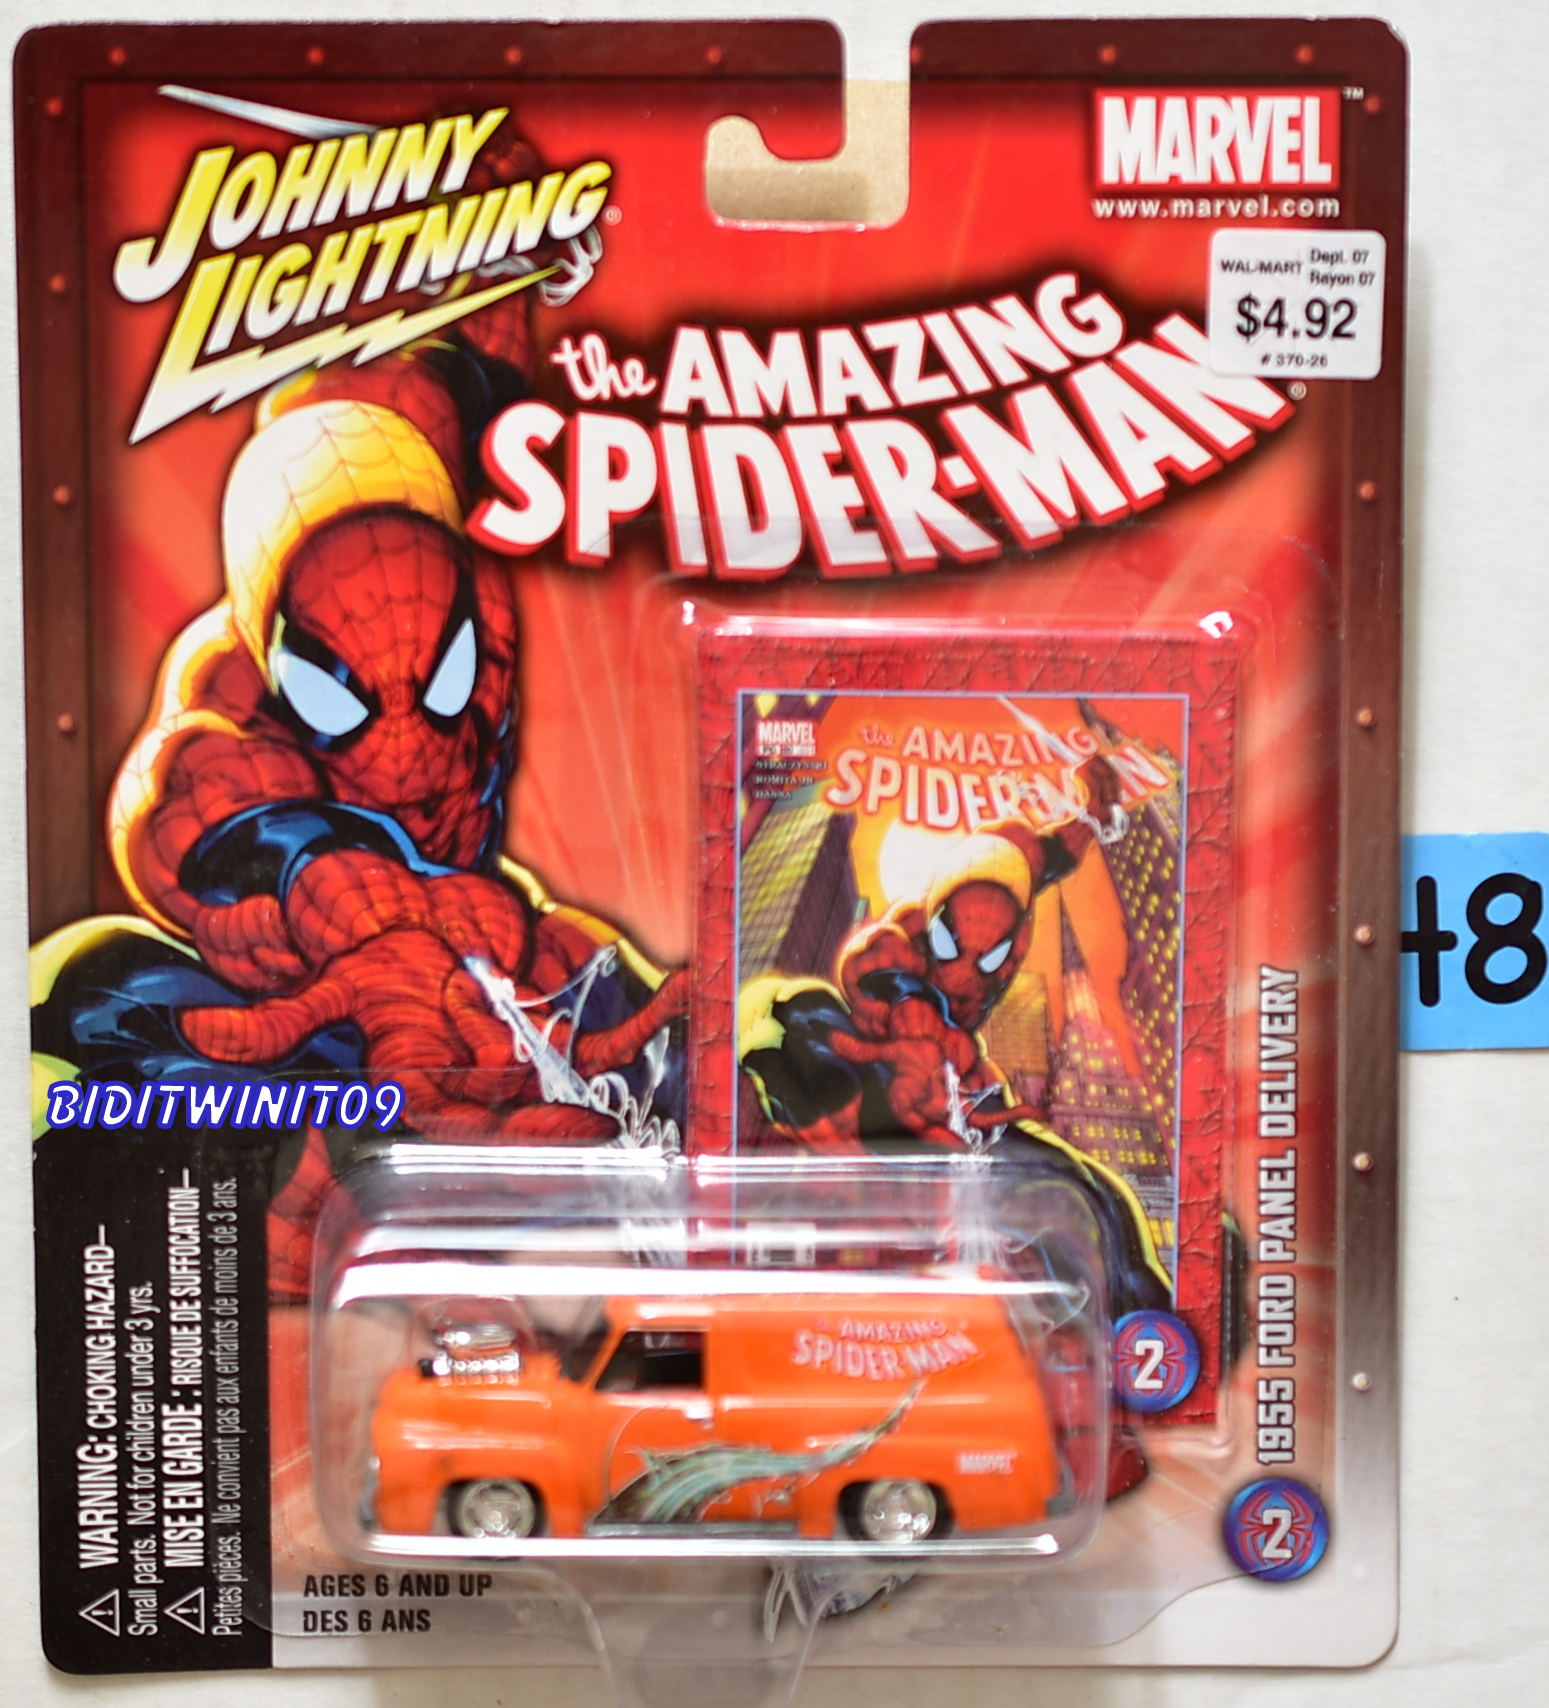 JOHNNY LIGHTNING MARVEL THE AMAZING SPIDER-MAN 1955 FORD PANEL DELIVERY #2 E+